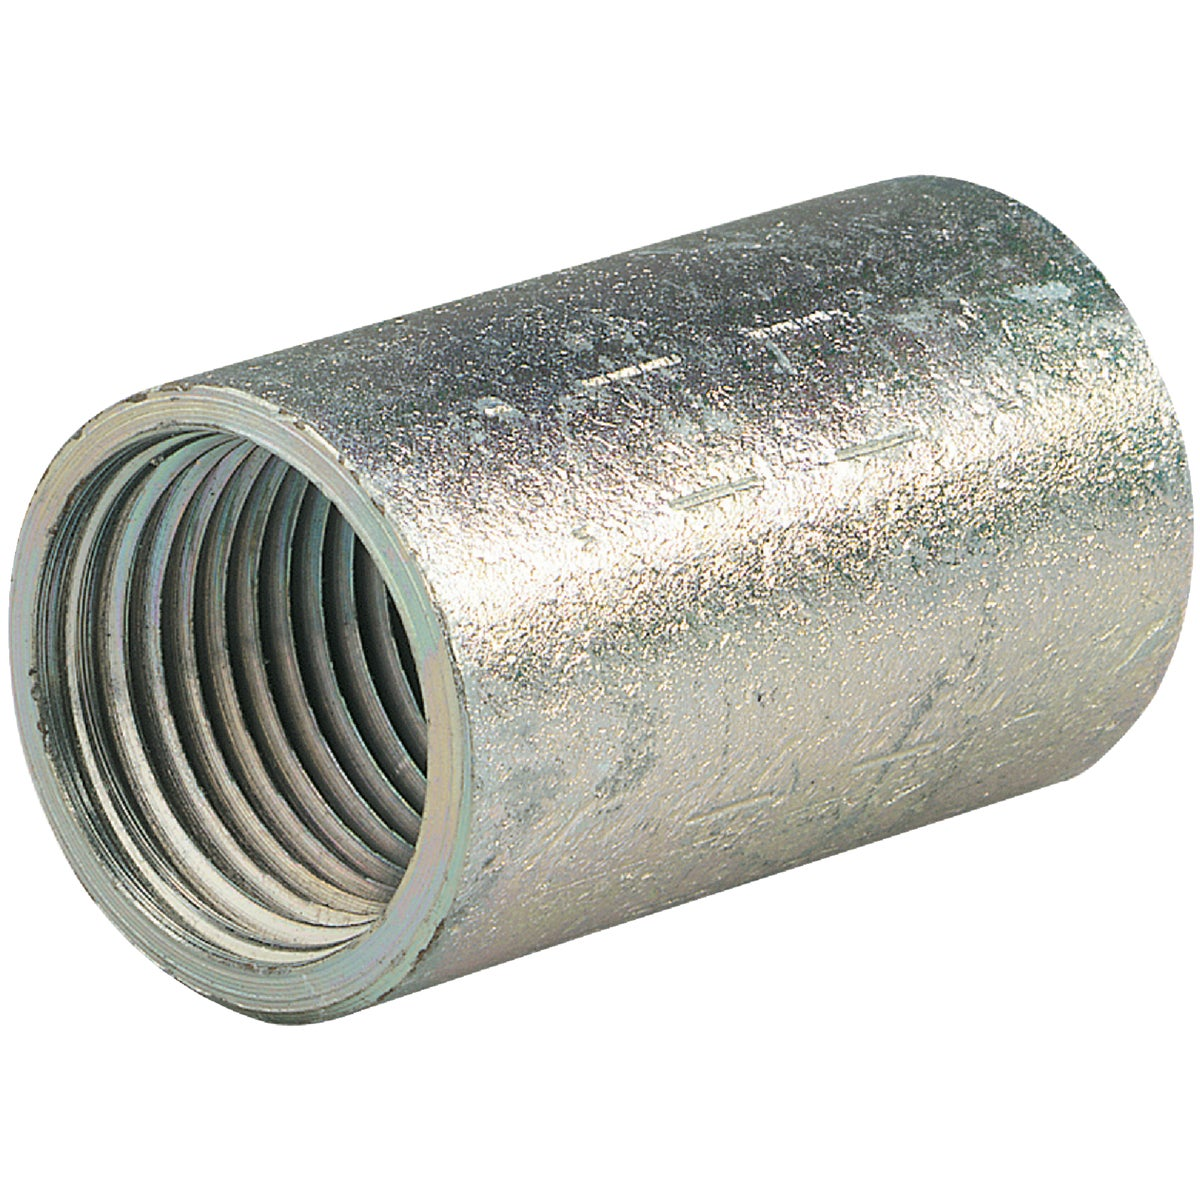 "1/2"" RIGID COUPLING - TRC121 by Thomas & Betts"